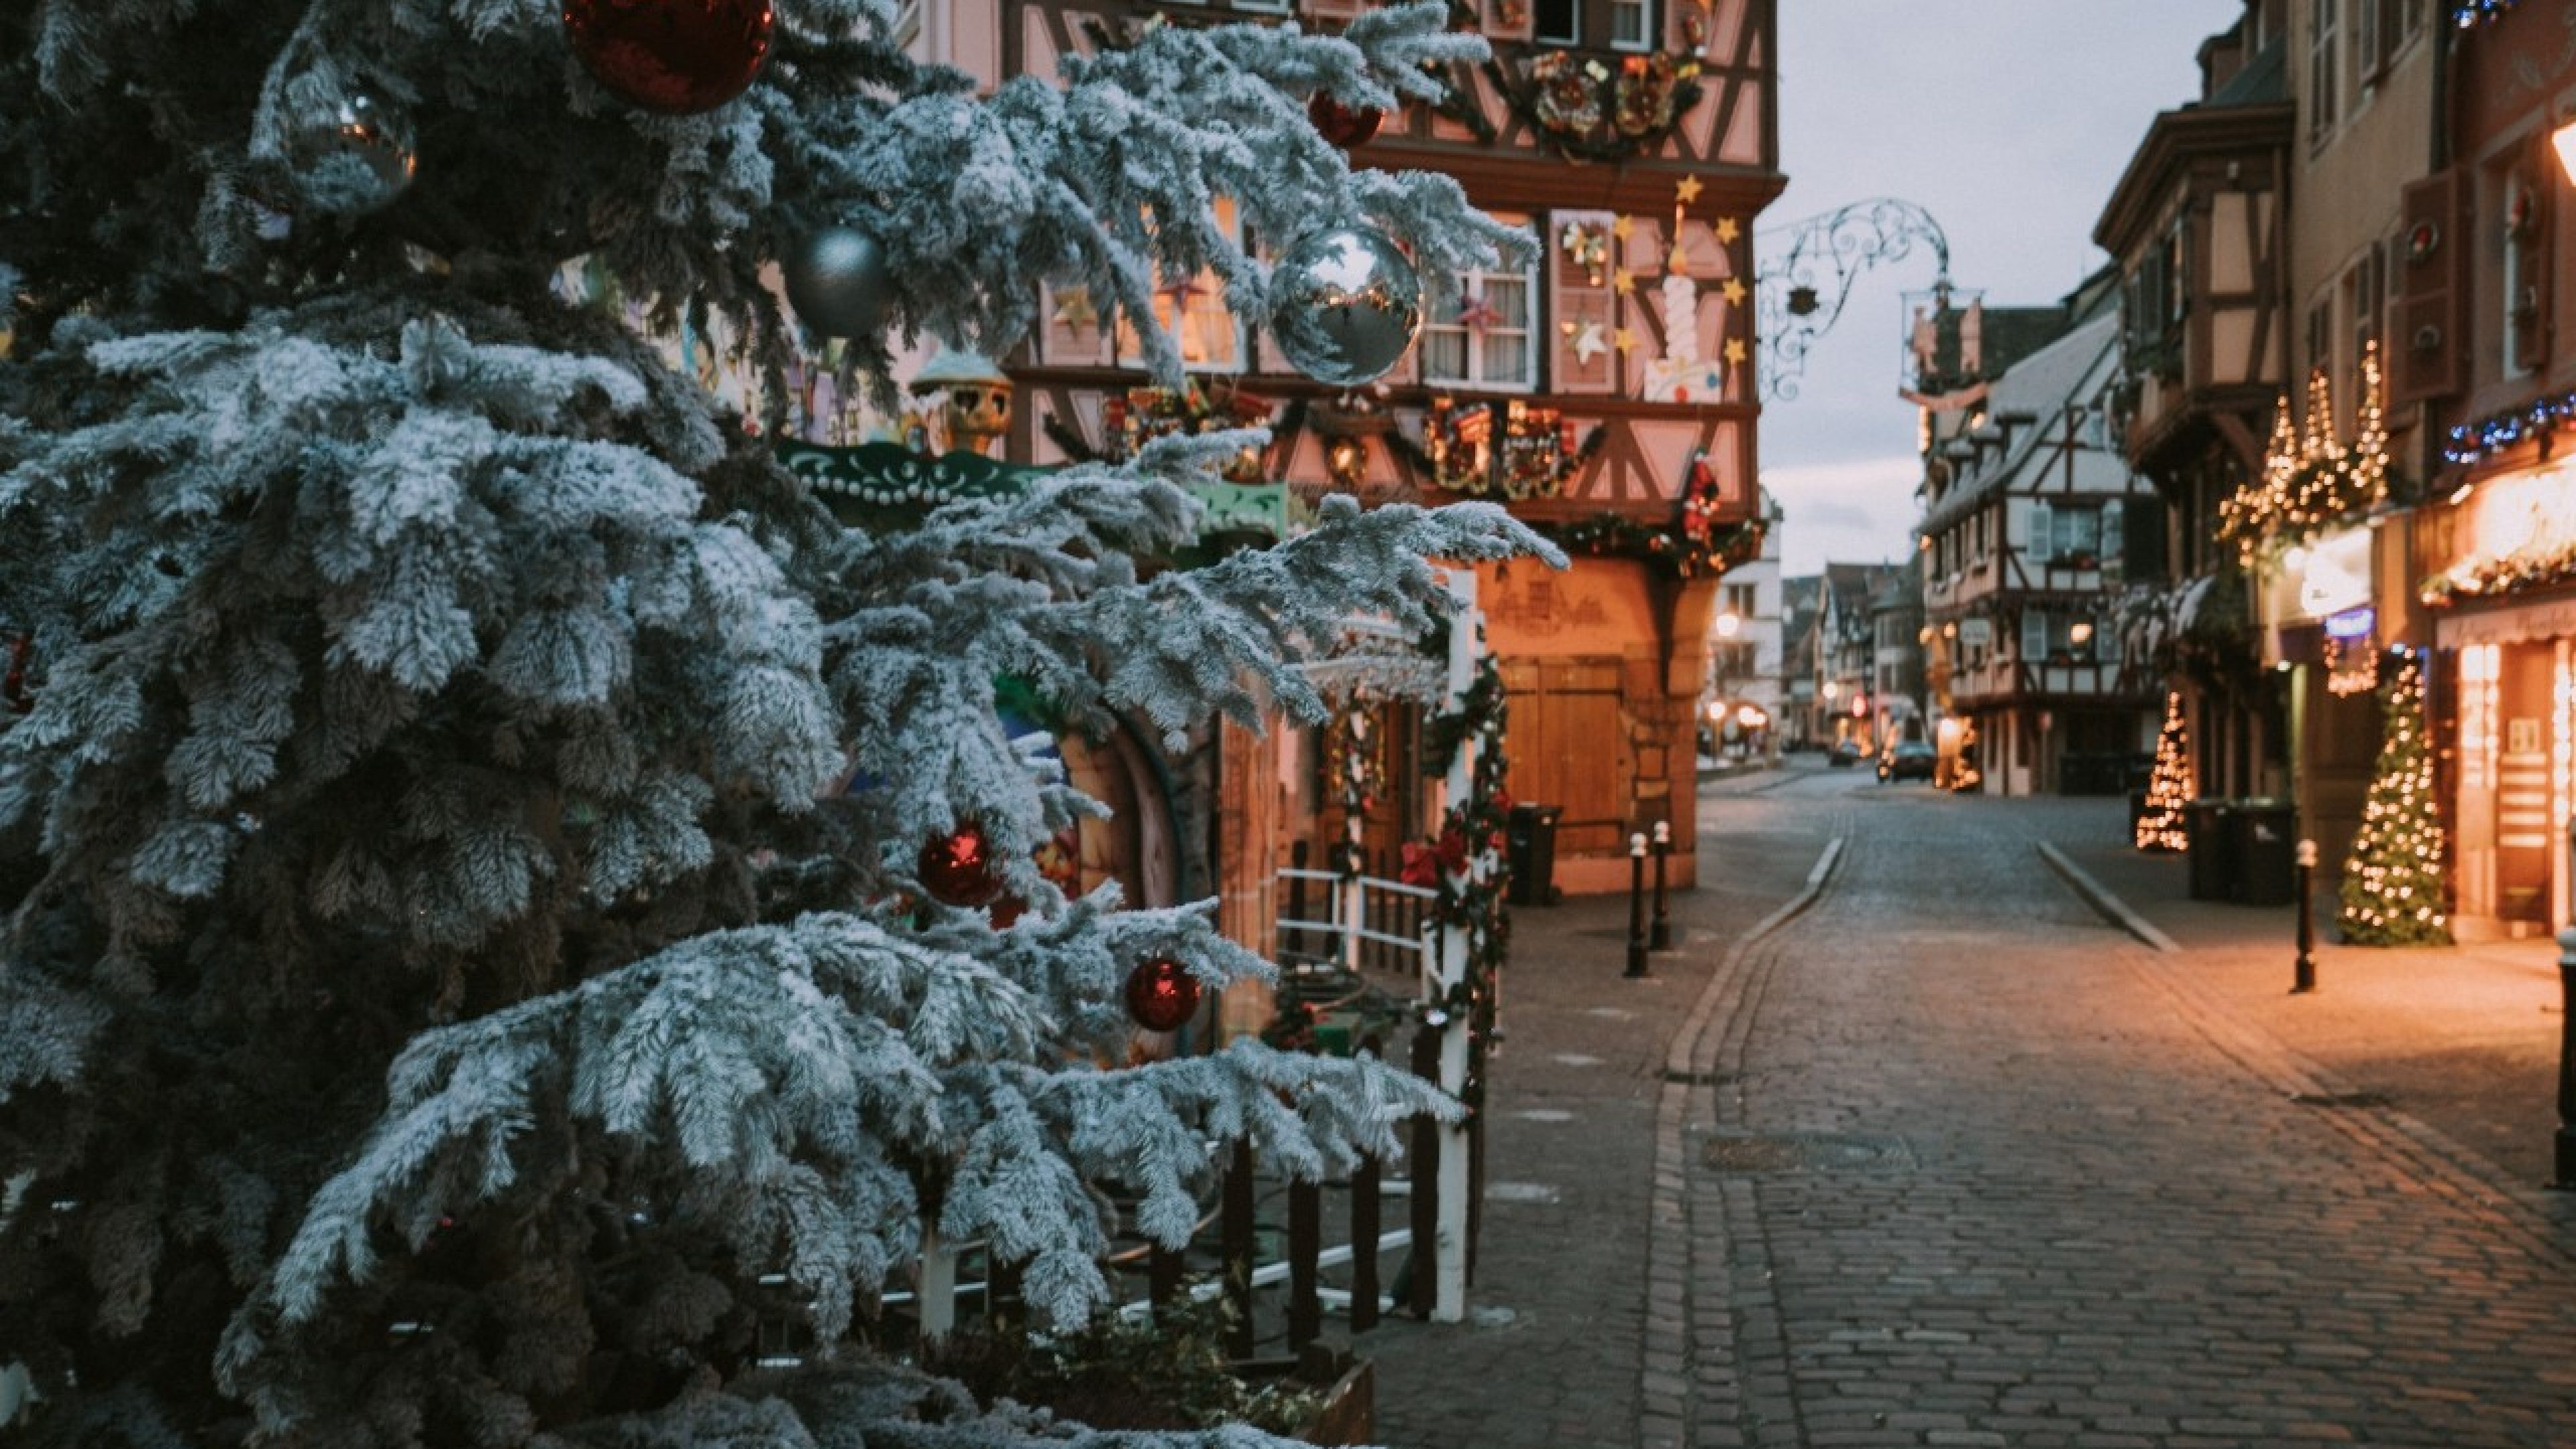 Old town illuminated and decorate magical like a fairy tale in Noel festive season at early morning time in Colmar, Alsace, France.